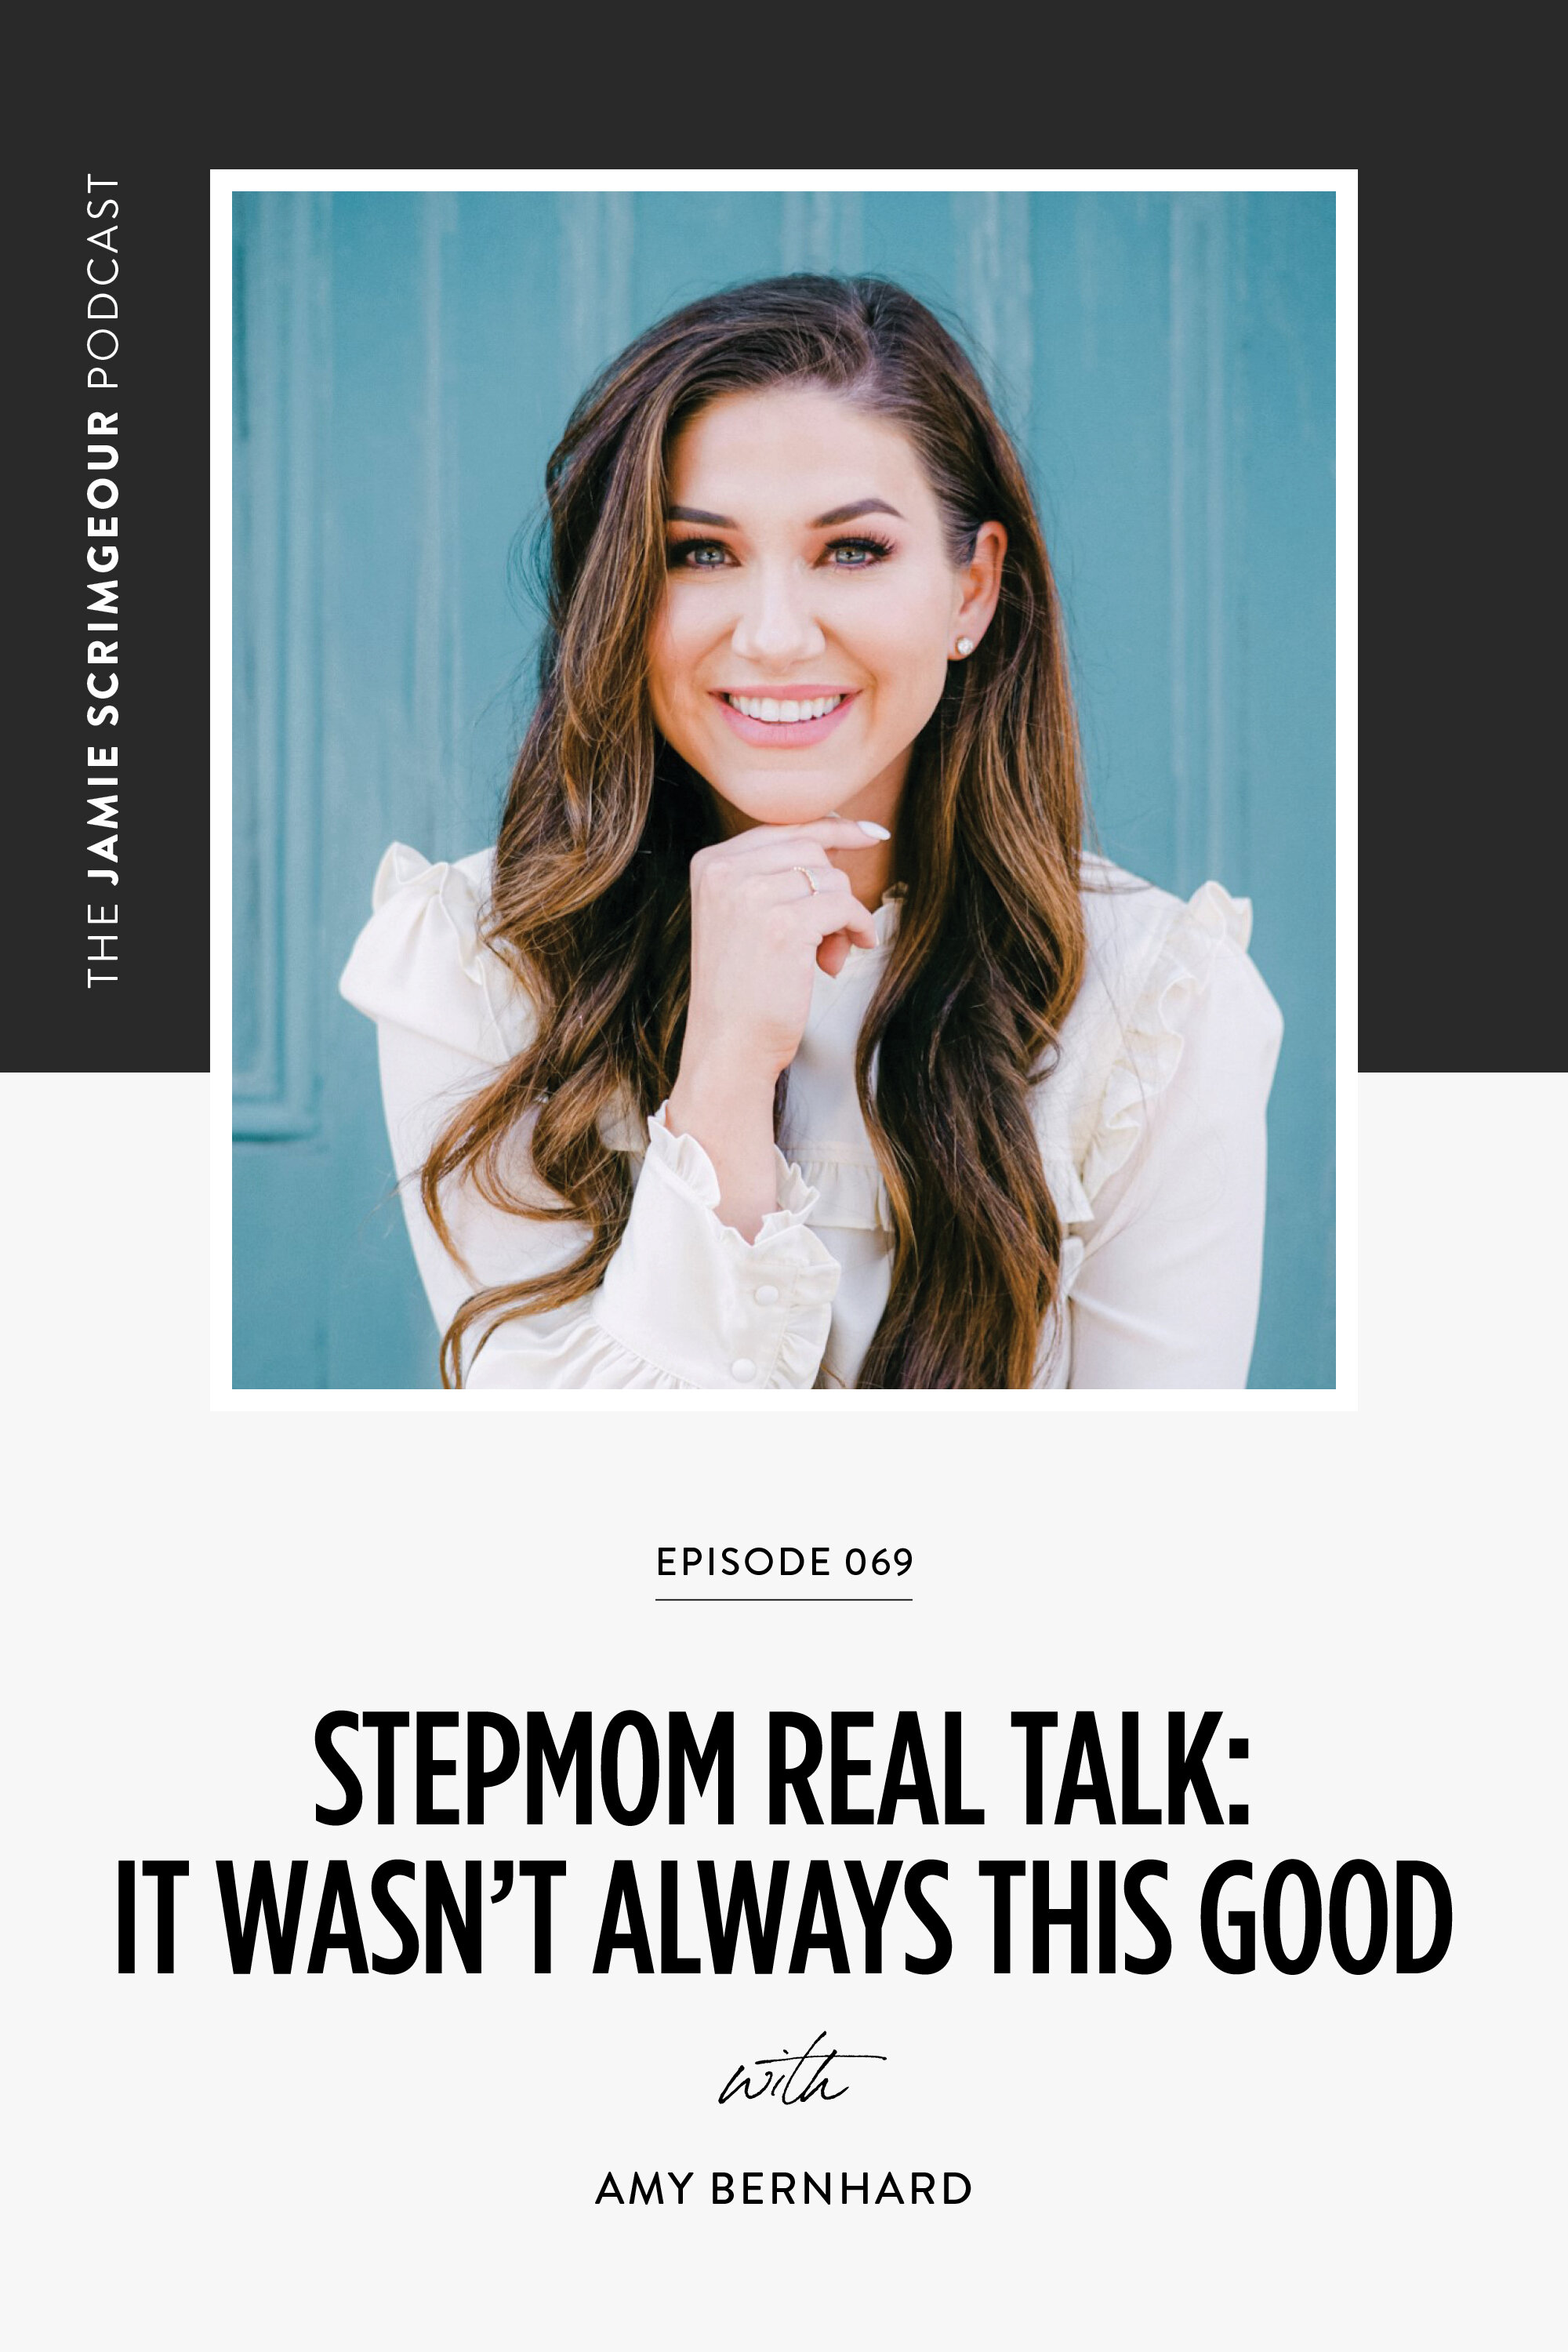 The Jamie Scrimgeour Podcast Episode 069 - Stepmom Real Talk With Amy Bernhard